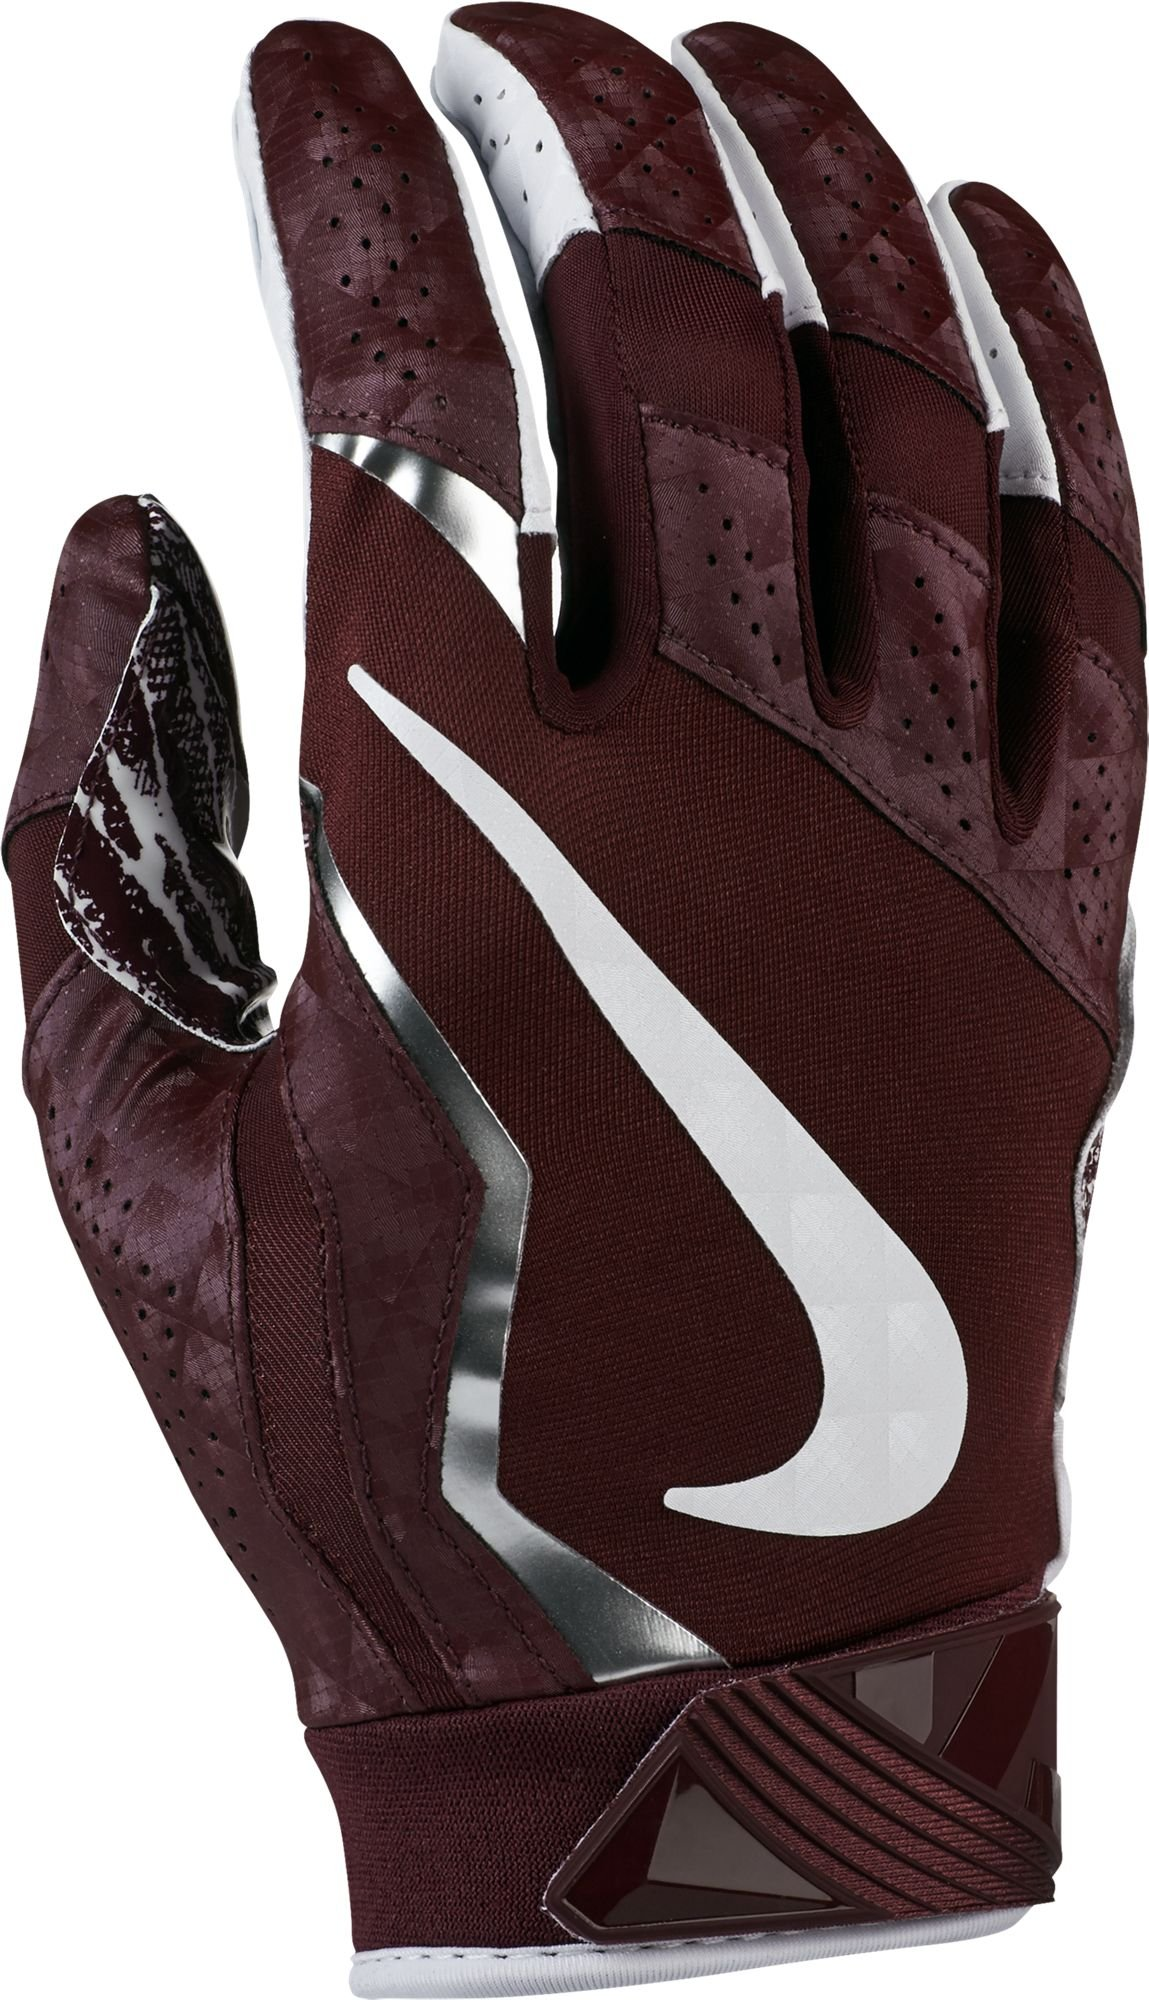 Nike Vapor Jet Gloves 4 Deep Maroon/White Size X-Large